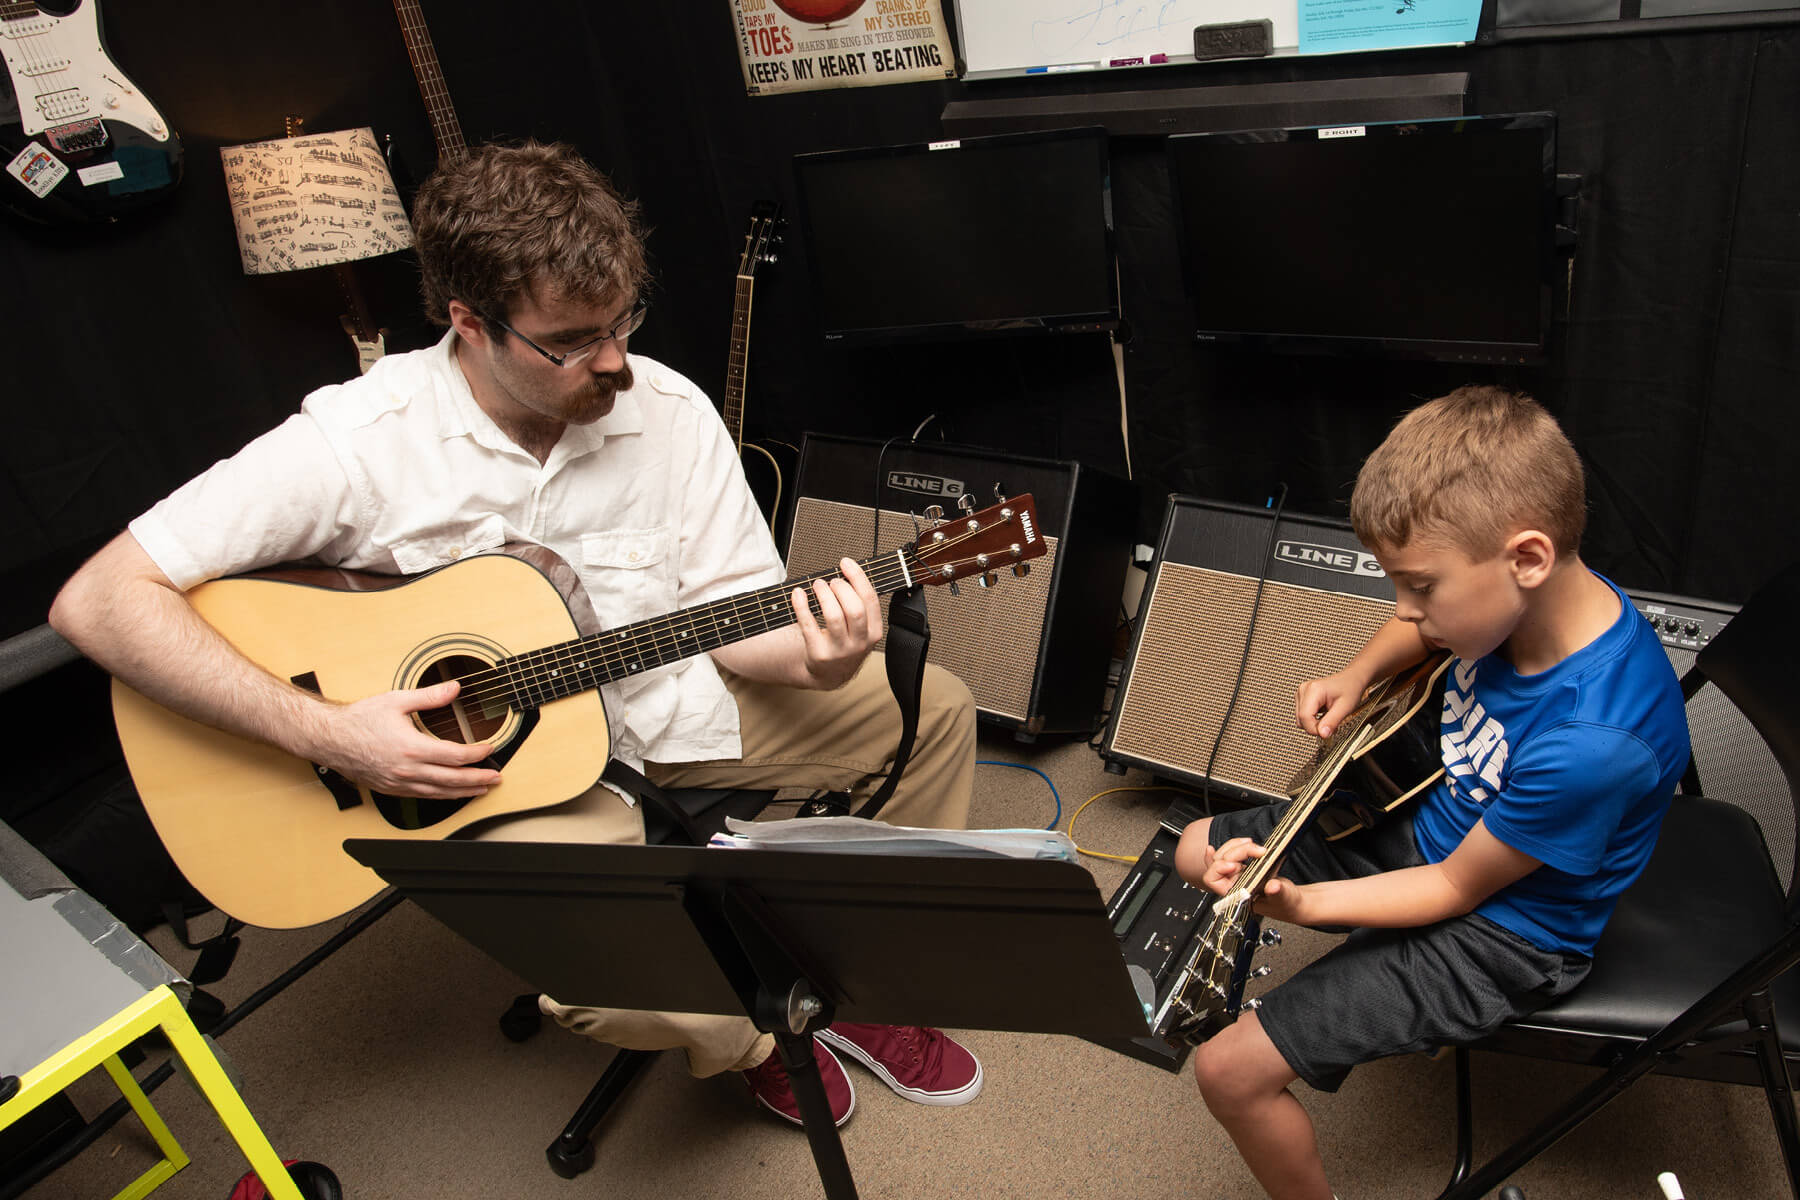 Instructor and student playing guitar